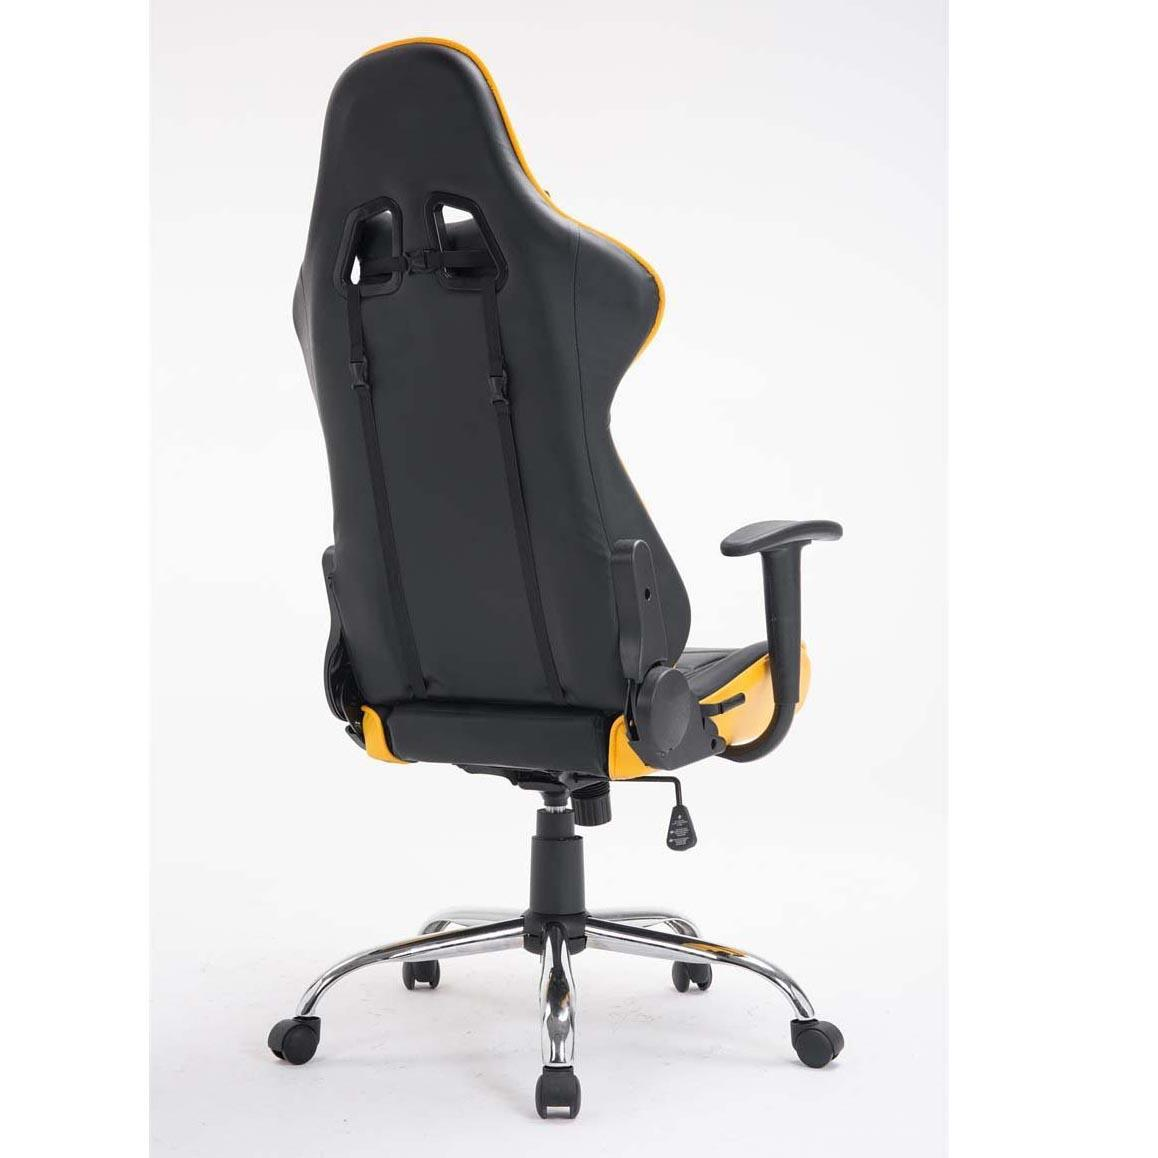 Silla gaming zelda reclinable con cojines en piel color for Silla gaming con altavoces